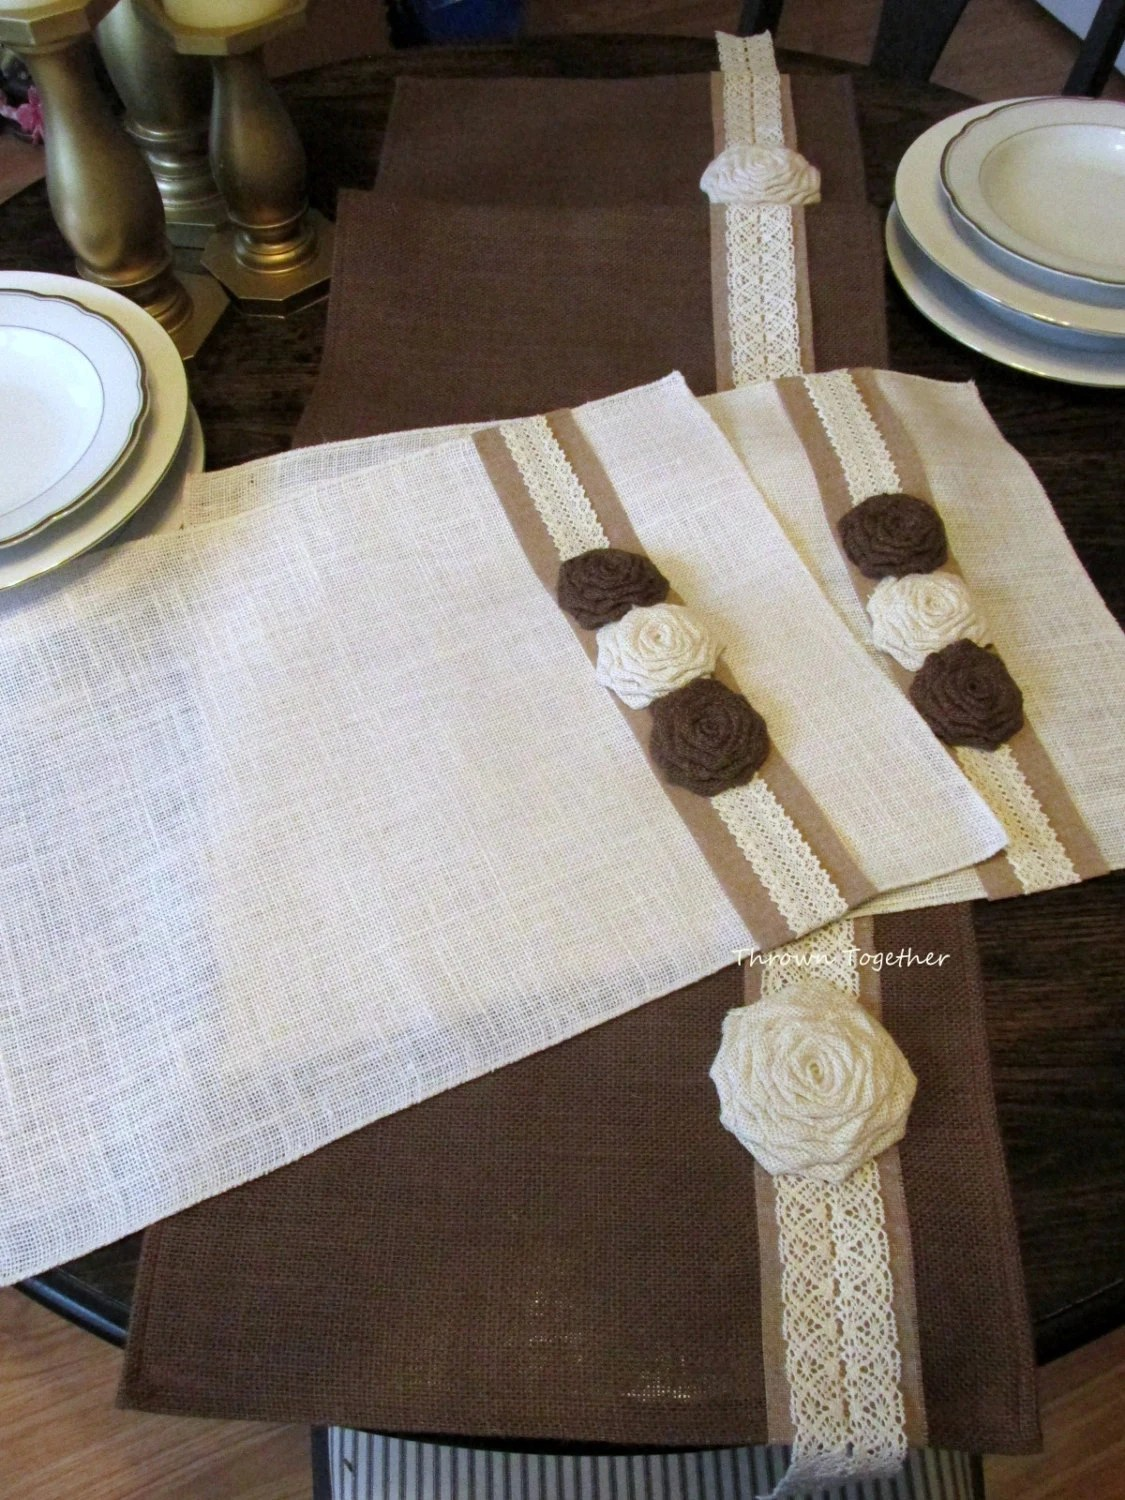 Farmhouse Style Table Runners Holiday Burlap Runner And Place Mats Brown And Off White Rustic